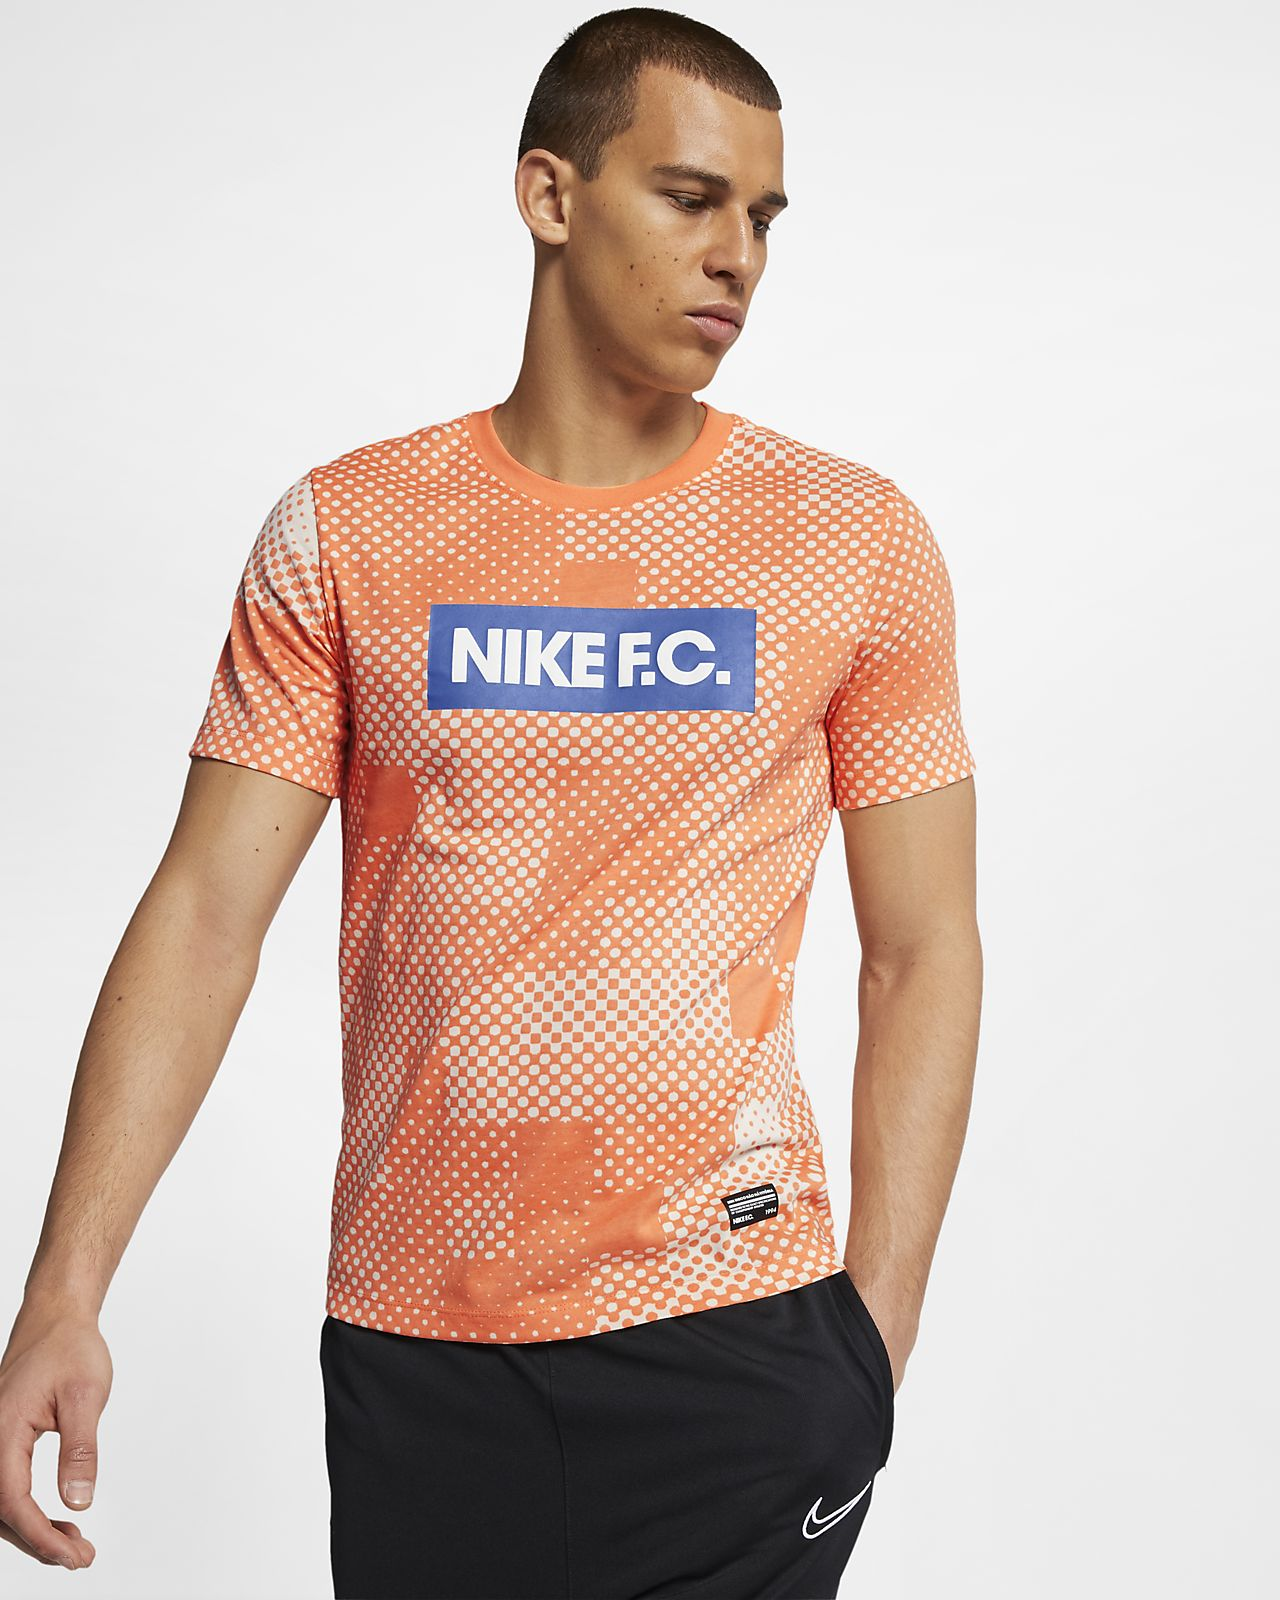 Nike Dri-FIT F.C. Men's Football T-Shirt